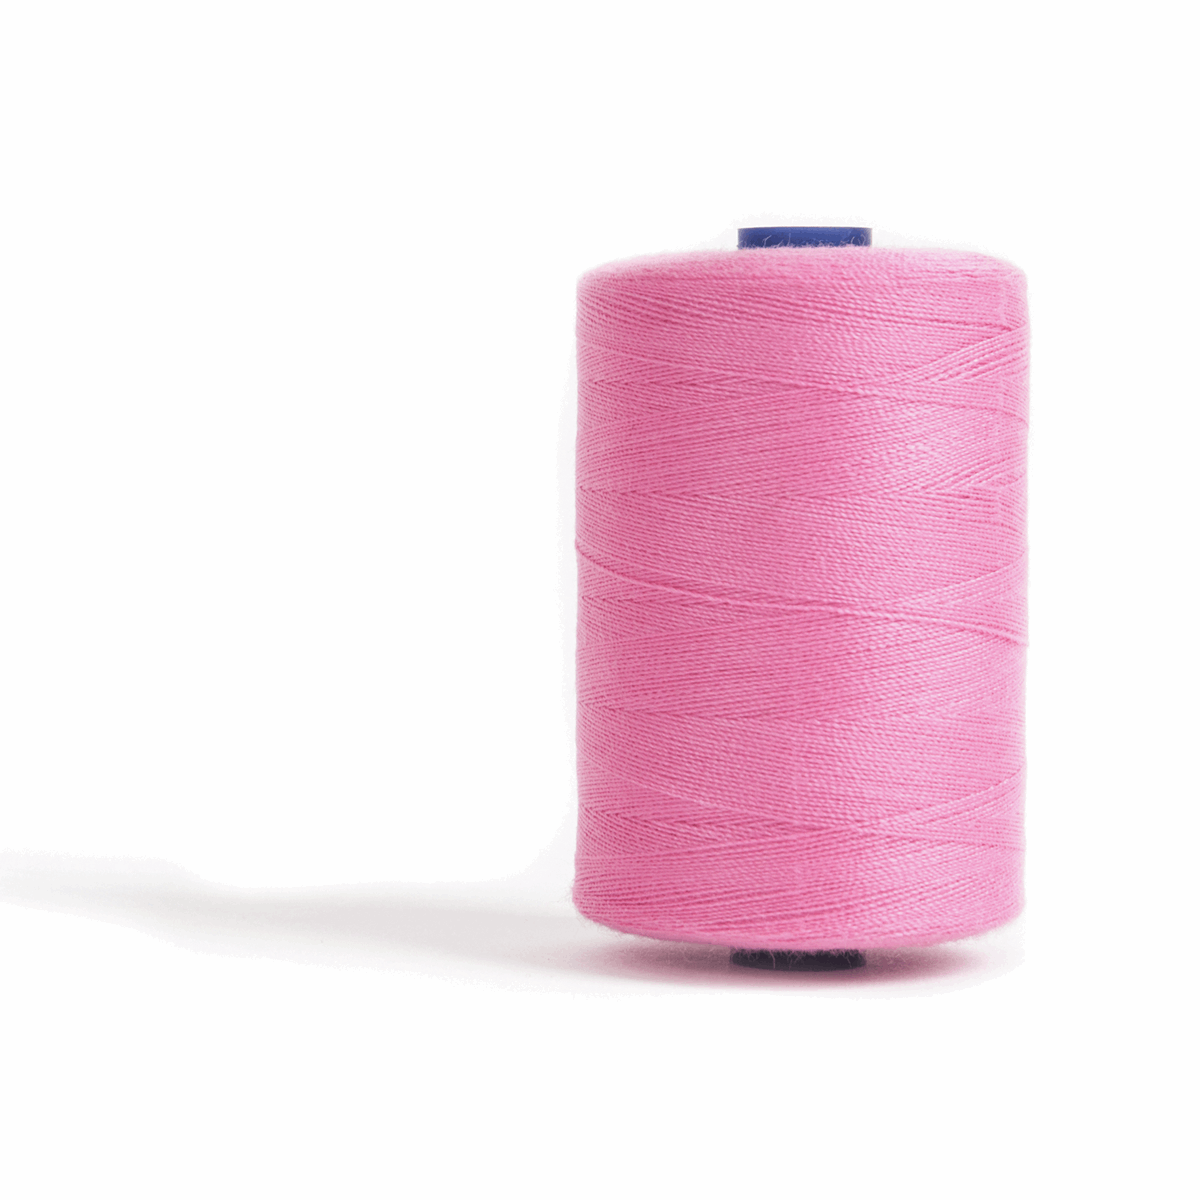 Picture of Sewing and Overlocking Thread: 5 x 1,000m: Rose Pink